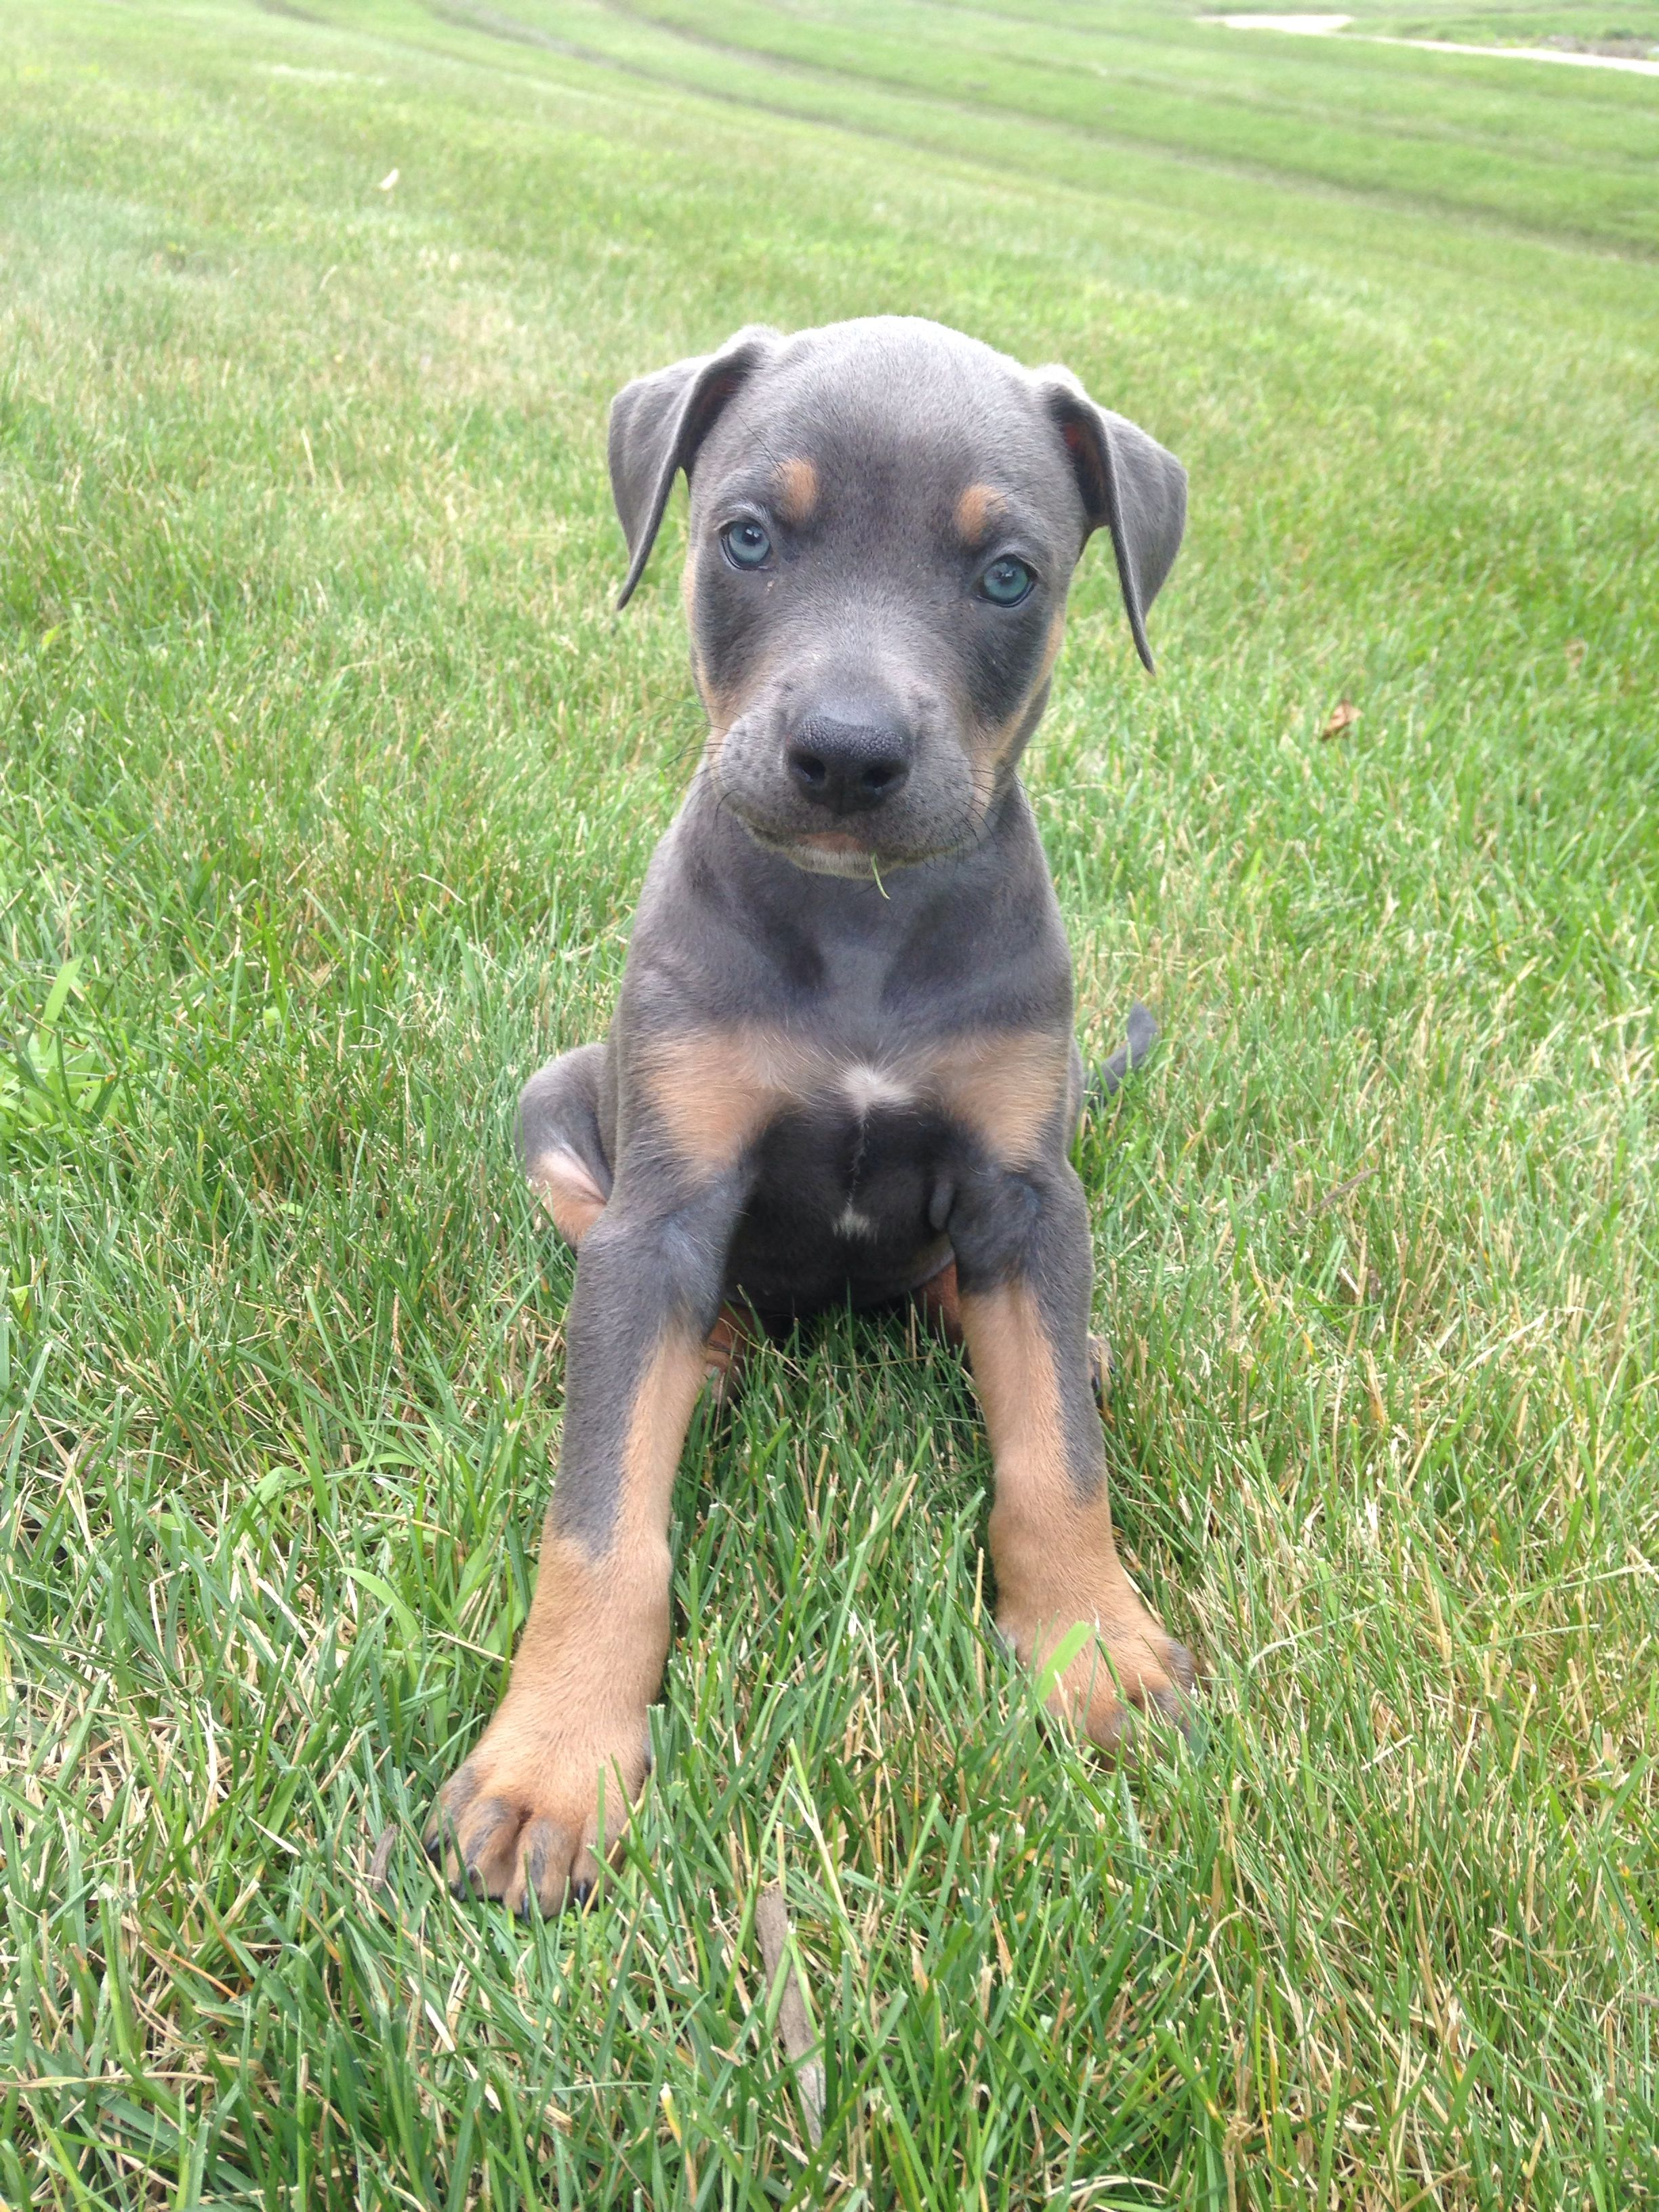 Doberman Mix Puppies For Sale | Greenfield Puppies